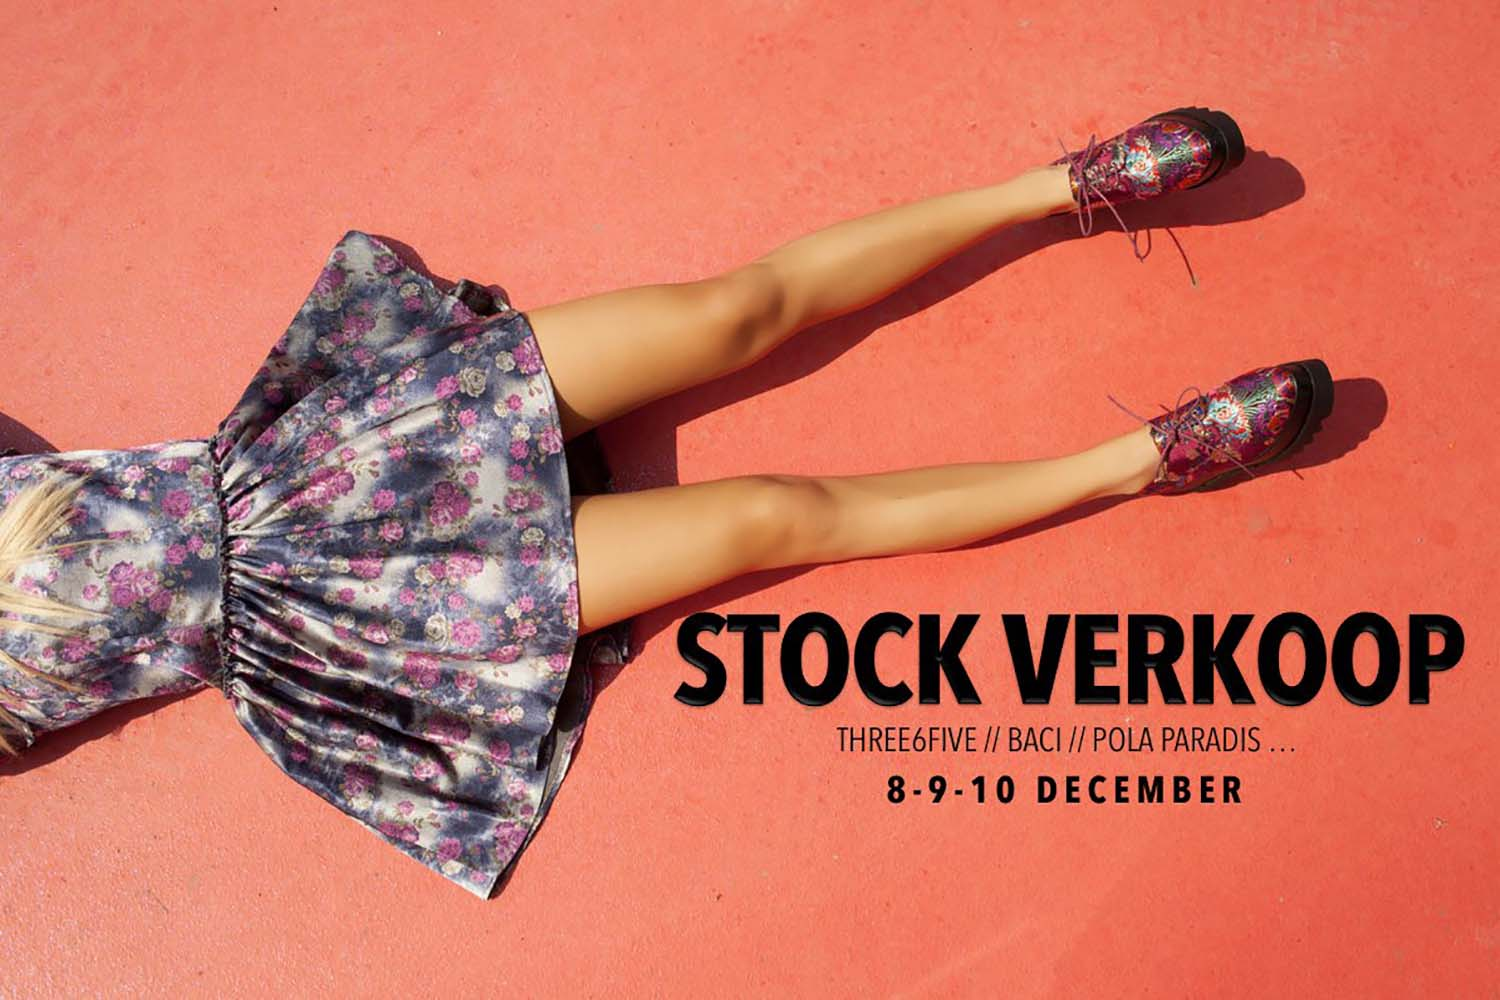 Stockverkoop House of Style